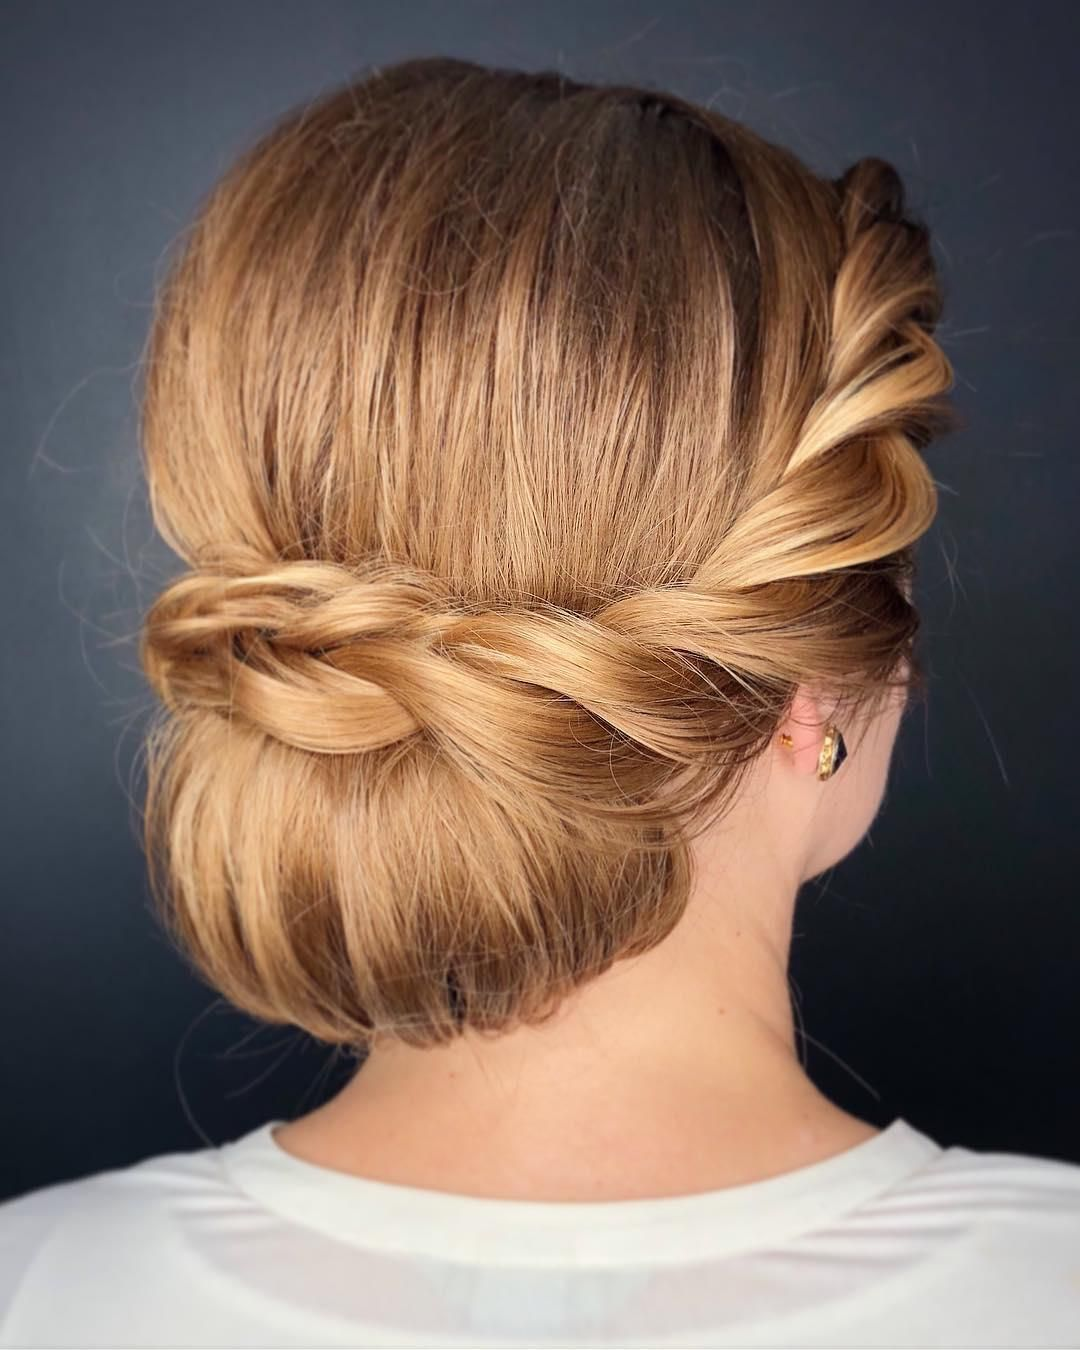 Wedding Hairstyle Near Me: Add A Textured Braid Or Two To Your Chignon Updo For A